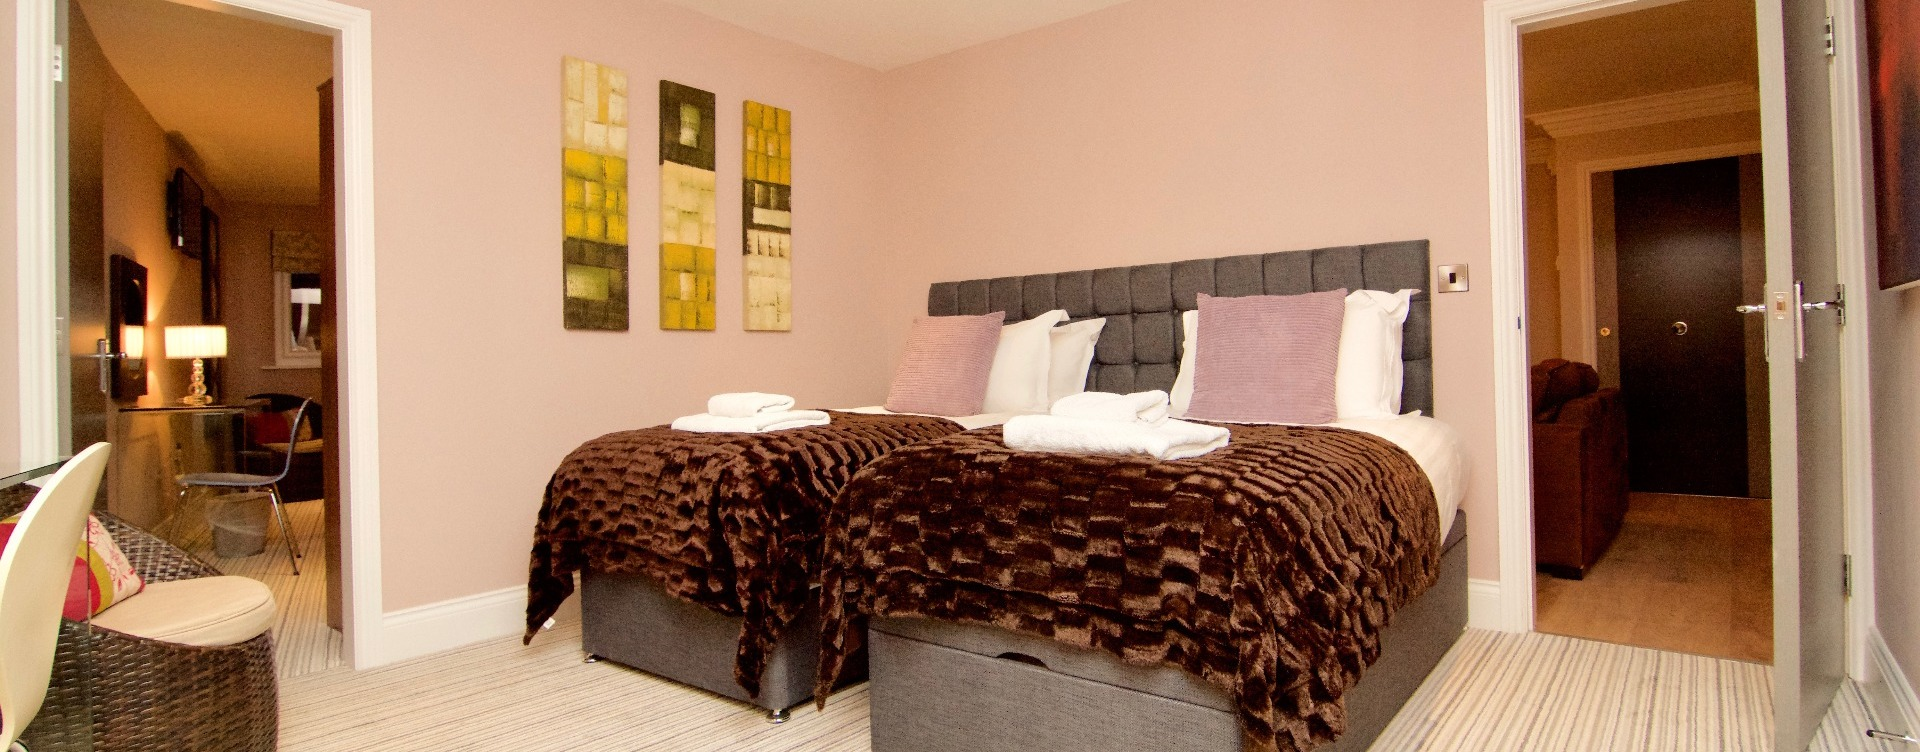 Cheap hotels in Harrogate or serviced apartments